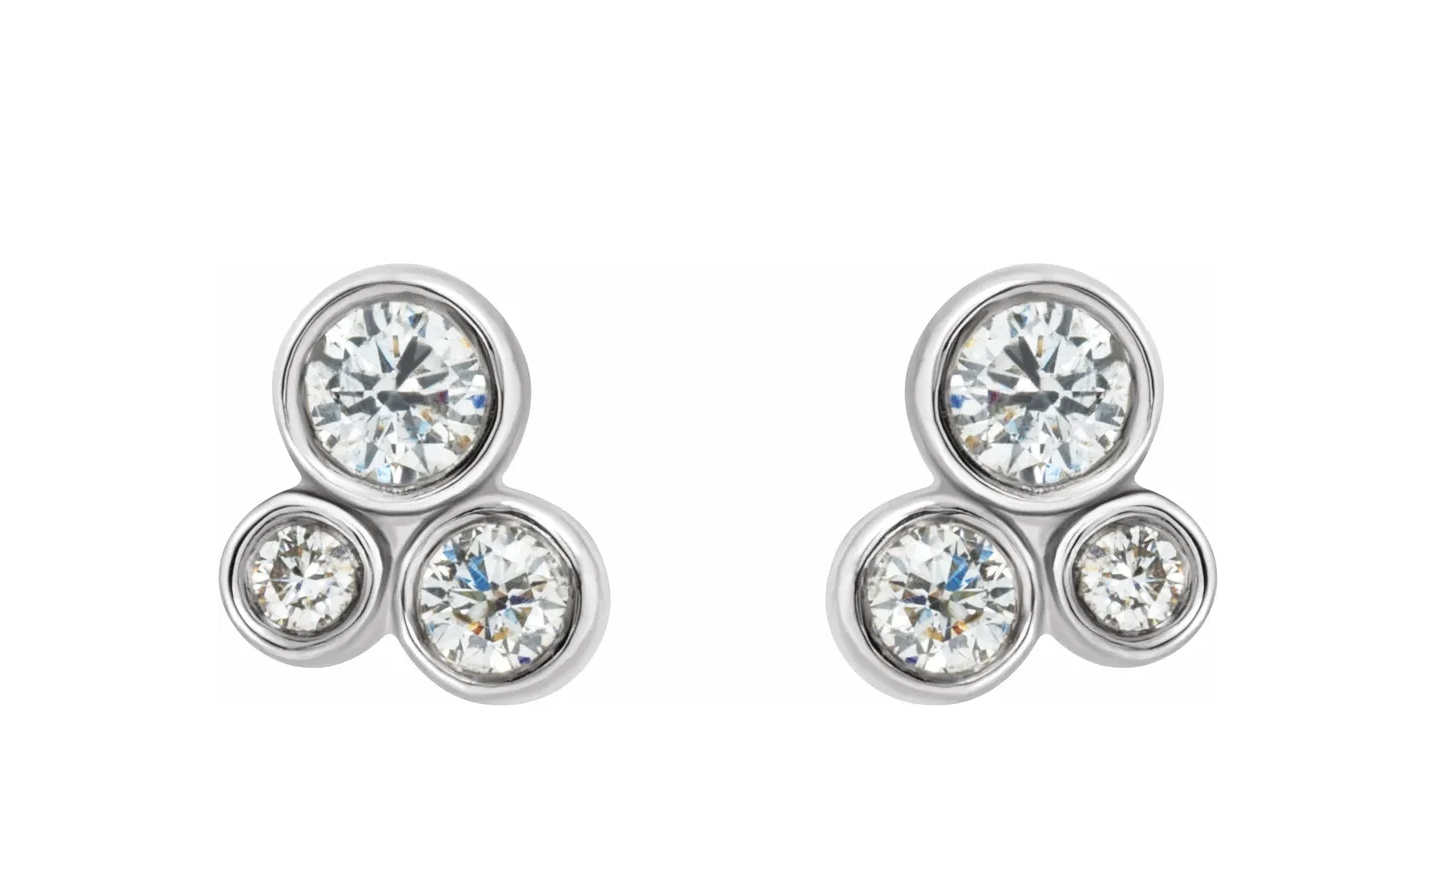 86752 Cluster Diamond Earrings 1/5 carat total